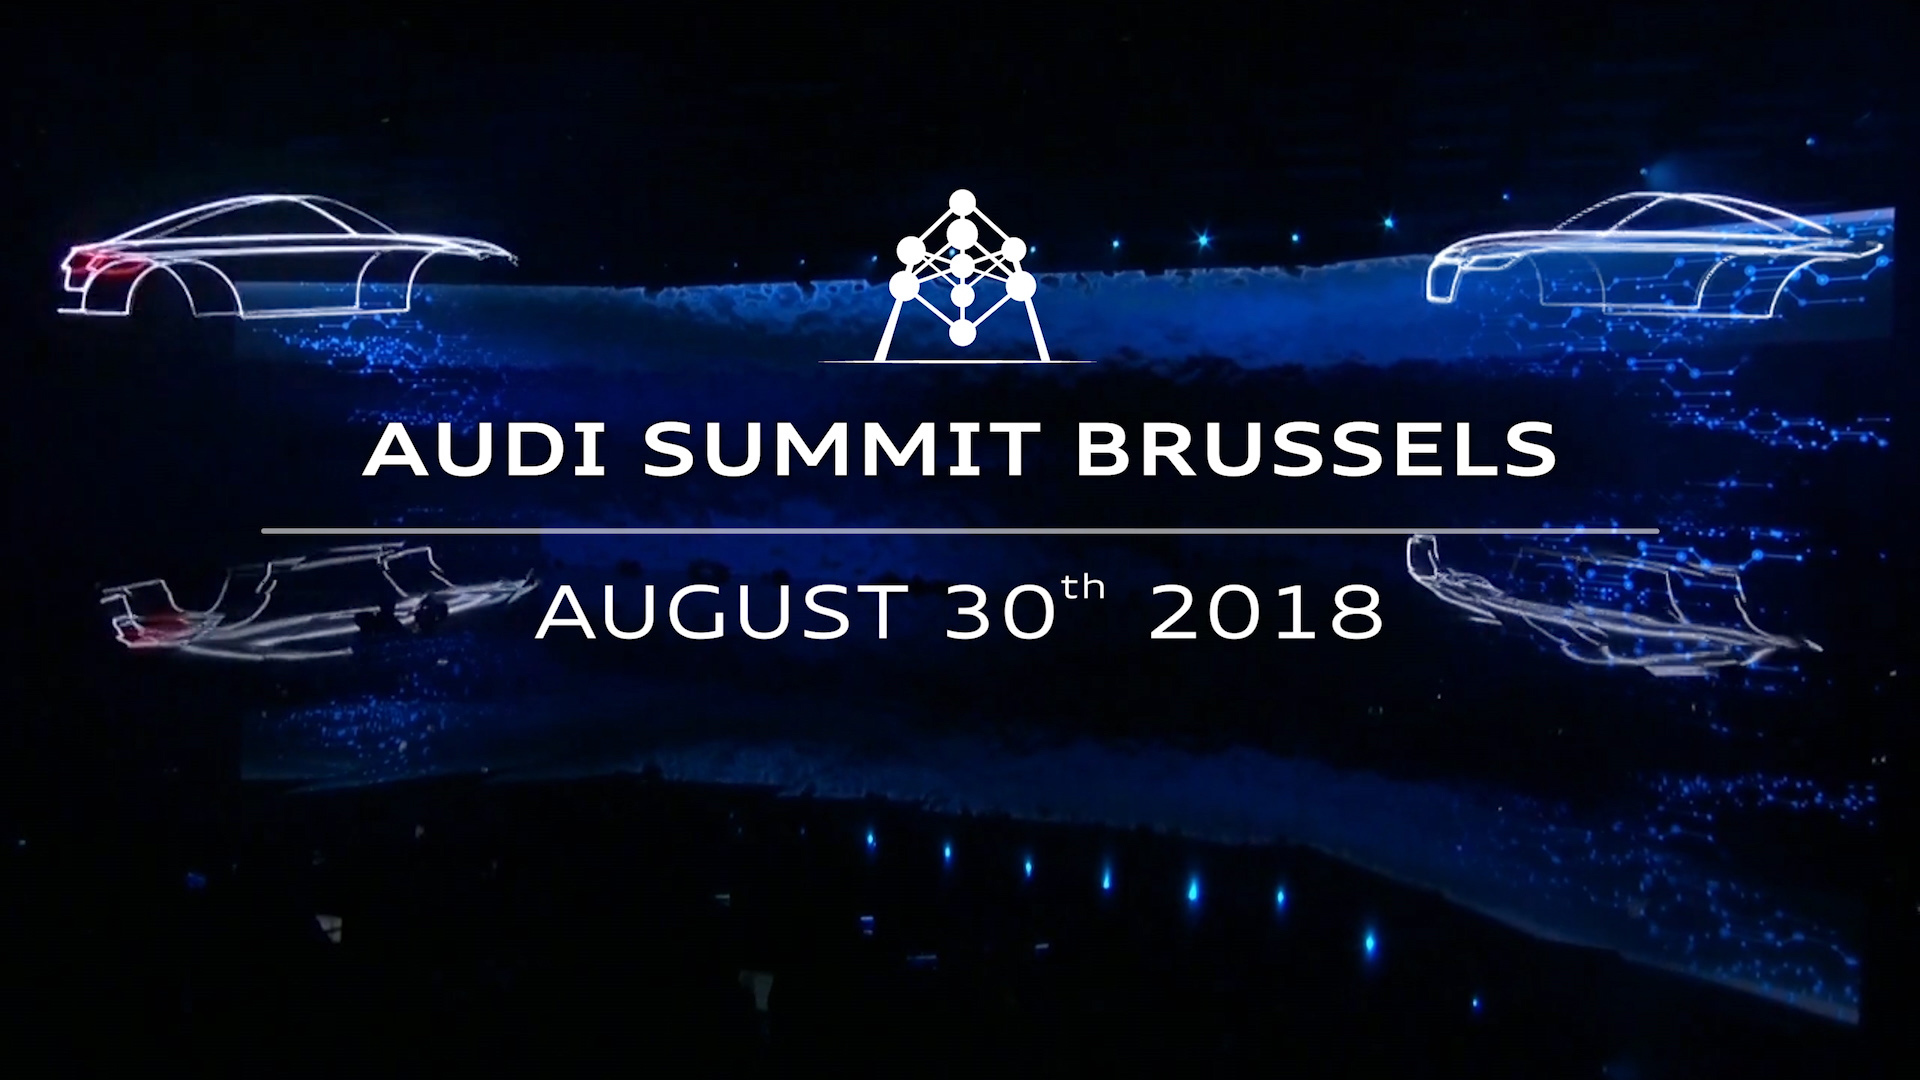 Audi Summit 2018: Mobility innovation ahead